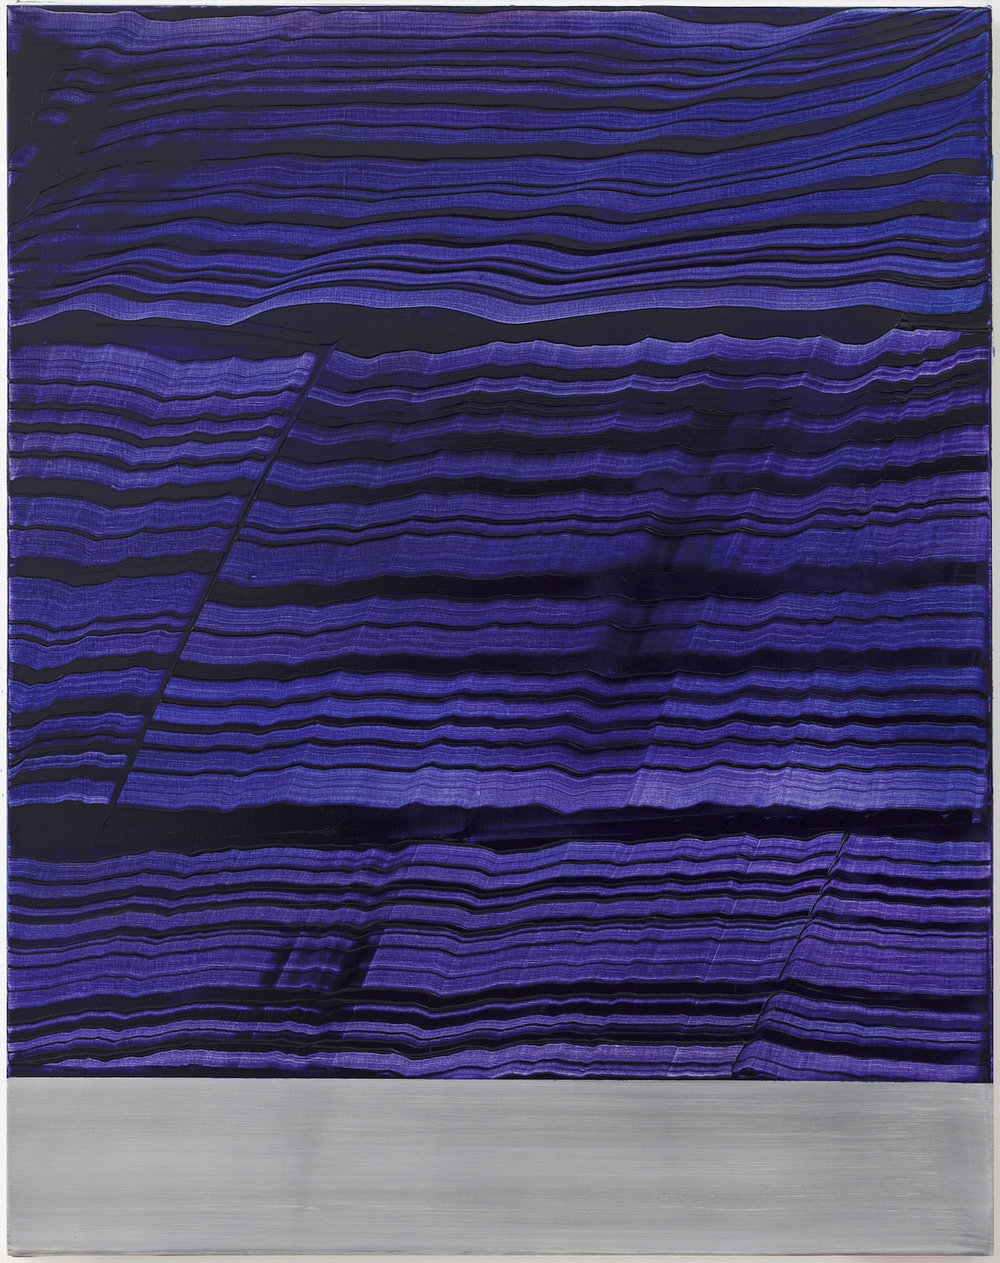 Ricardo Mazal    Violet Blue & Grey Band 2,  2017 Oil on linen 46 x 36 inches       For More Information     Artist Biography, Exhibitions & Collections